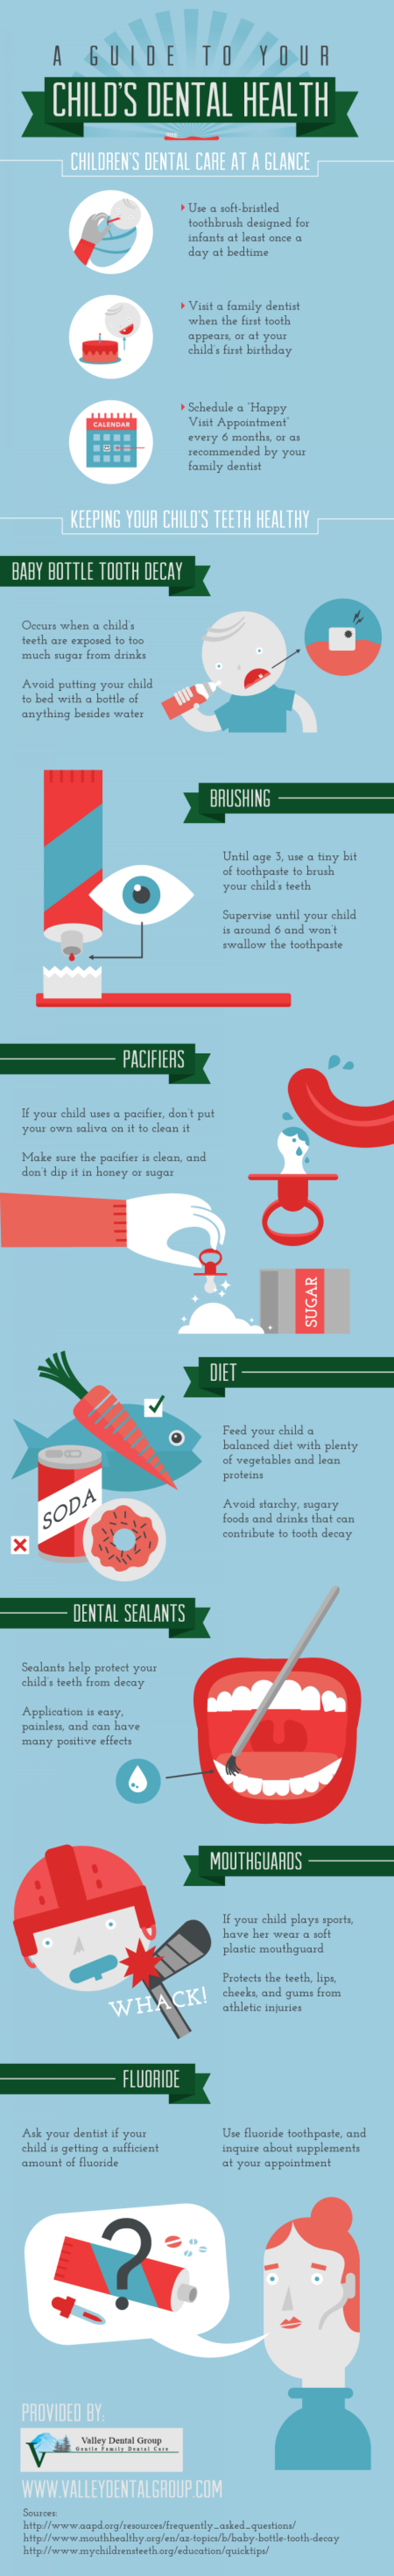 A GUIDE TO YOUR CHILD'S DENTAL HEALTH Infographic